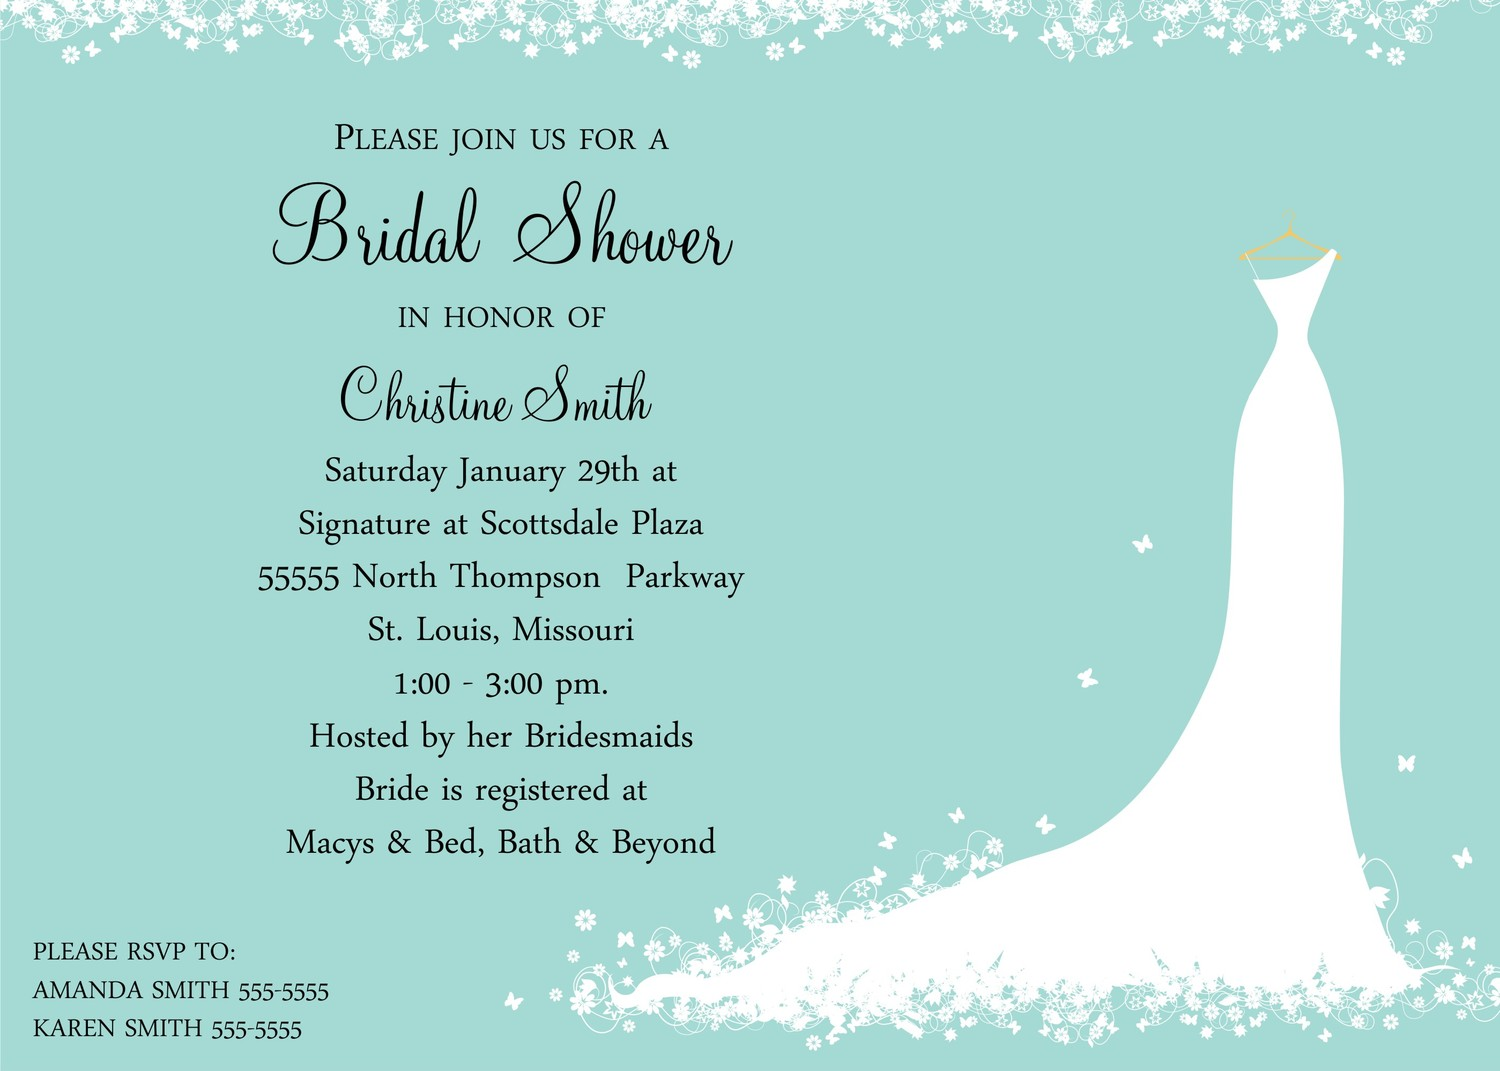 Bridal Shower Invitations How To Make Bridal Shower Invitations Online